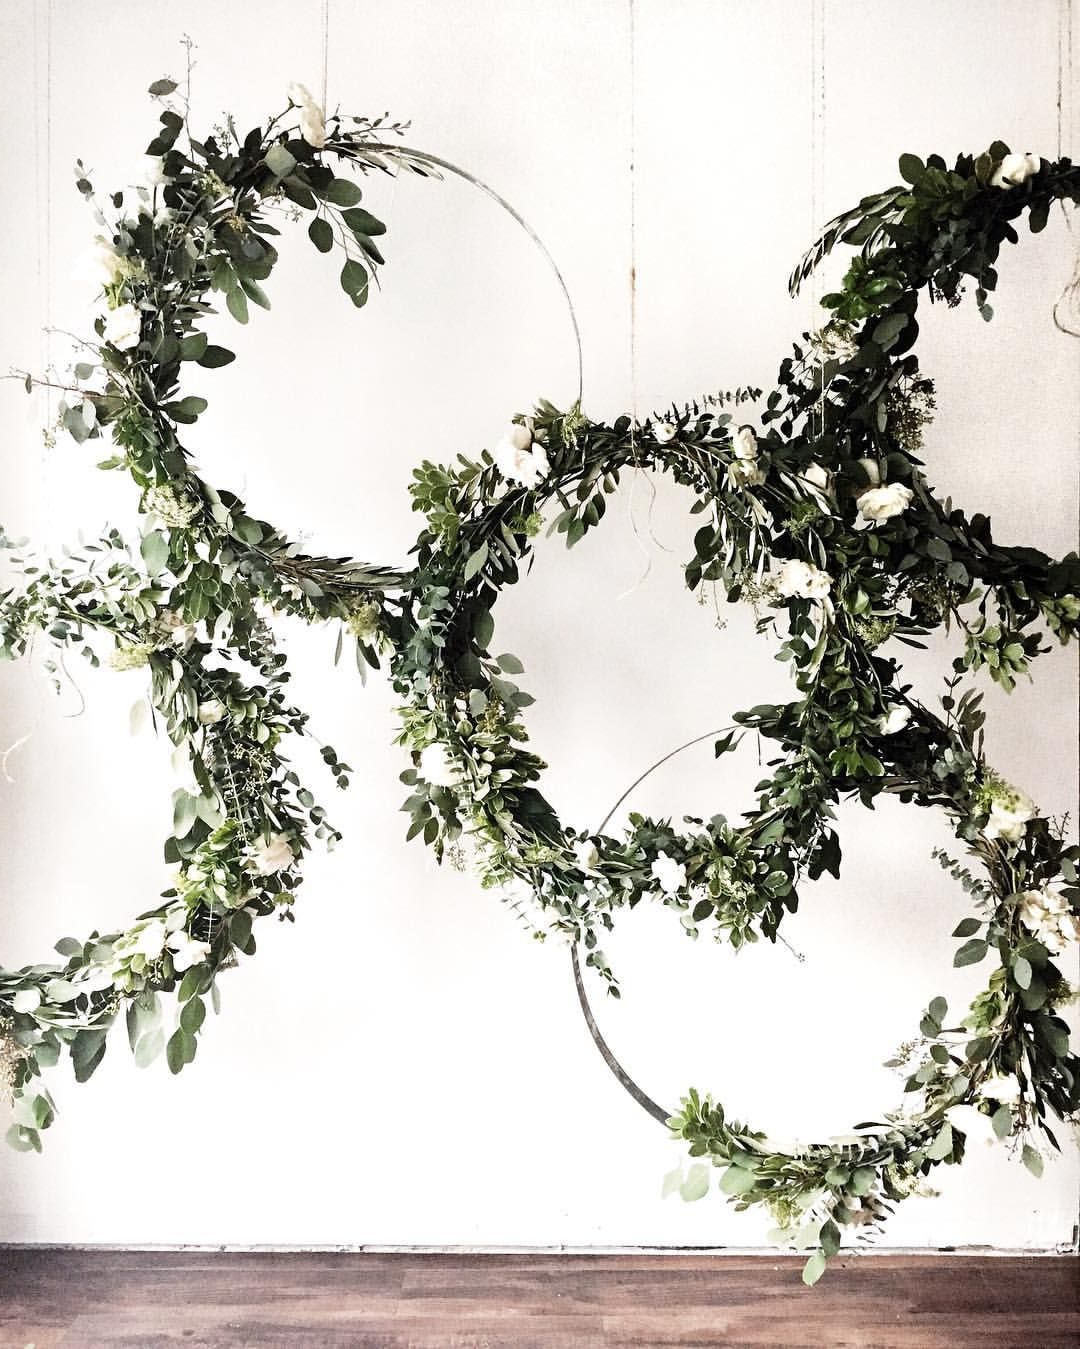 2019 Three Flowers On Vine Wall Decor Throughout Greenery Vine Wreath – Could Be Inside An Embroidery Hoop? Perhaps (View 1 of 20)